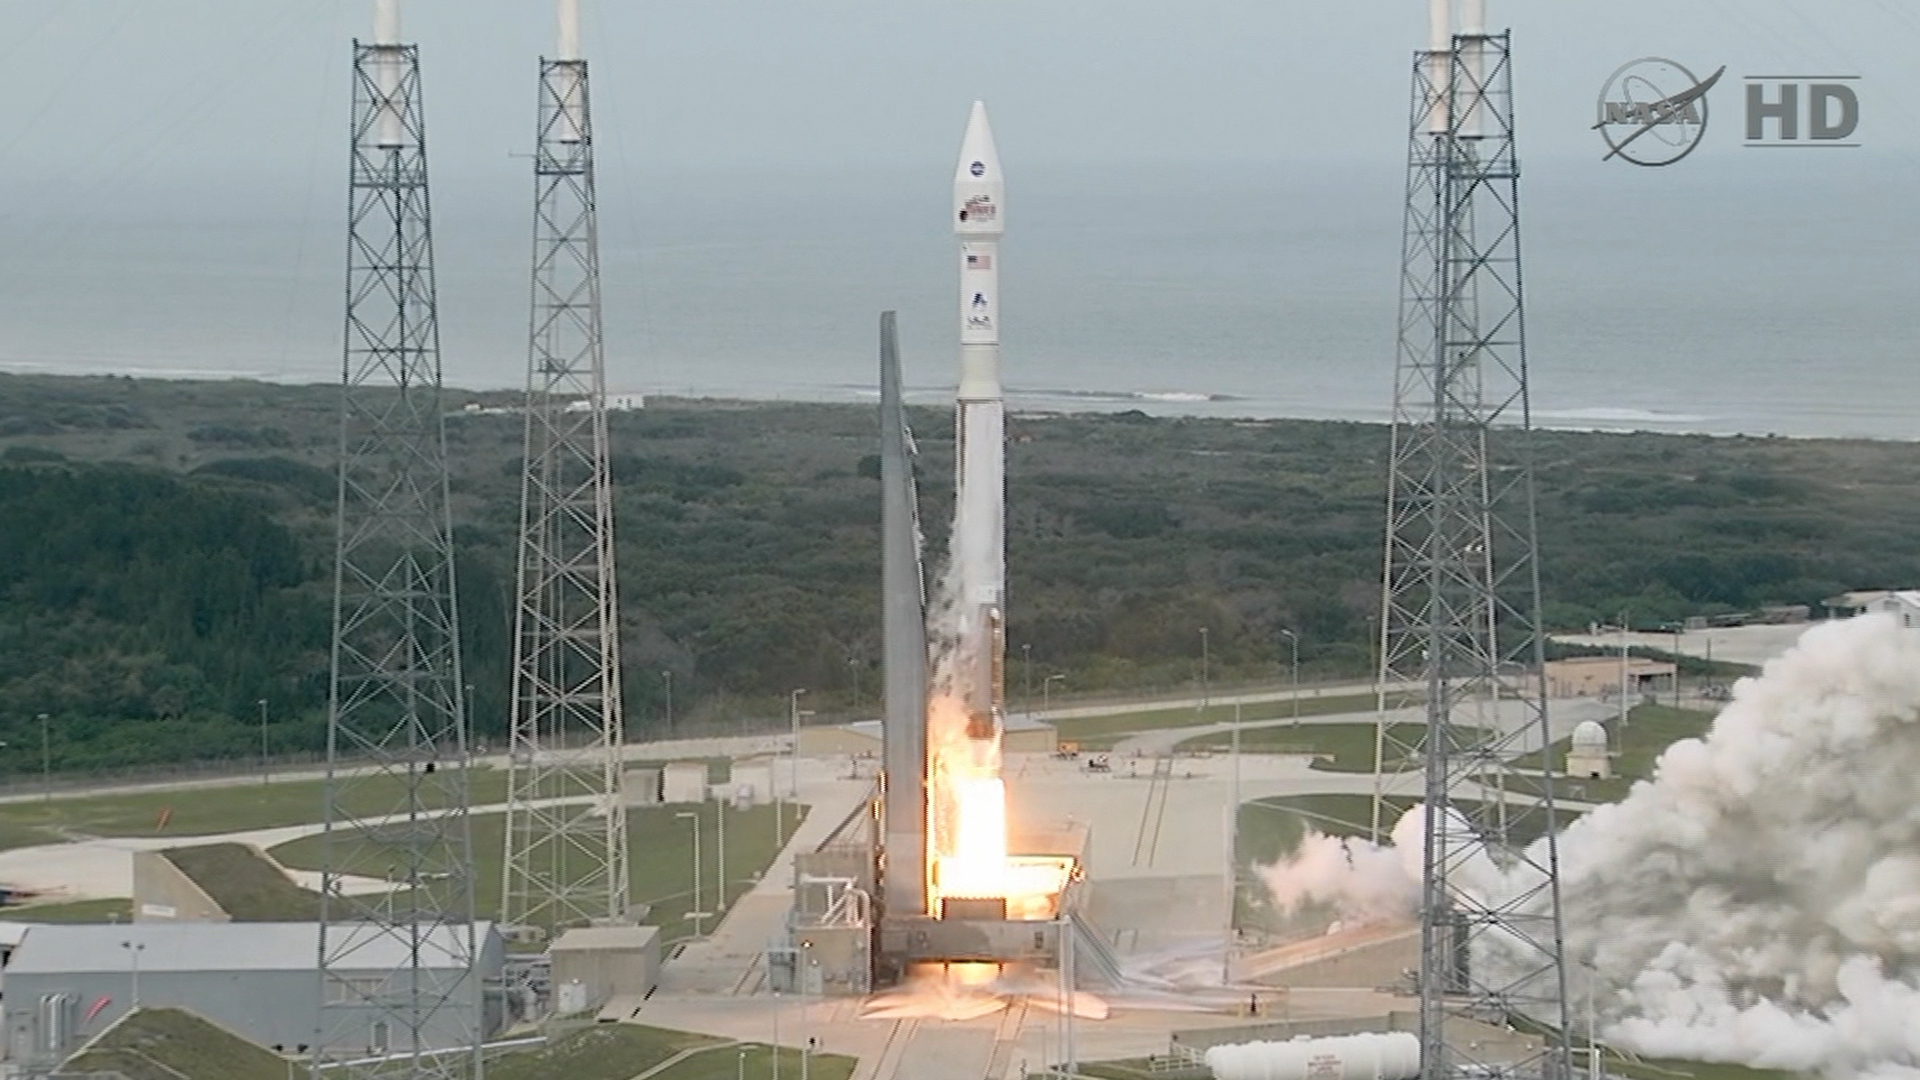 Image: Maven launch